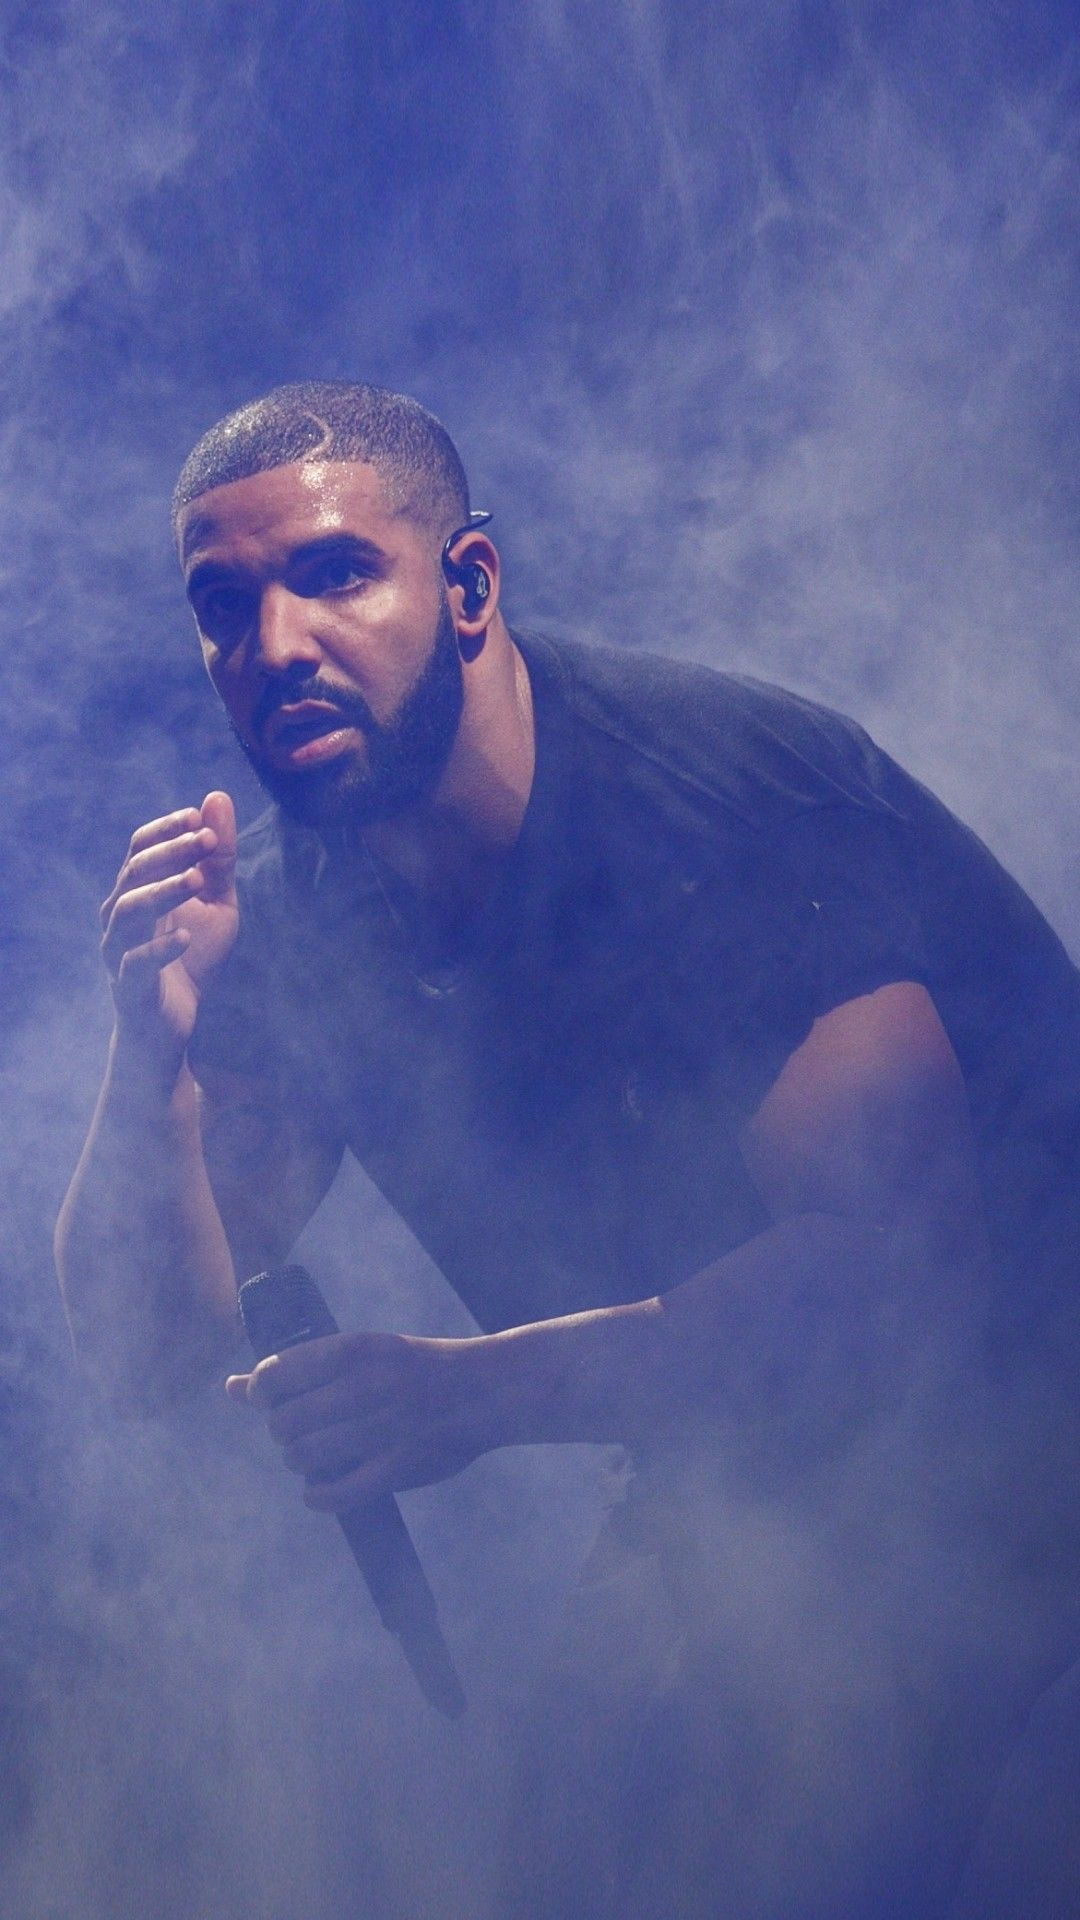 Drake Wallpaper Android In 2020 Drake Wallpapers Top Music Artists Music Artists